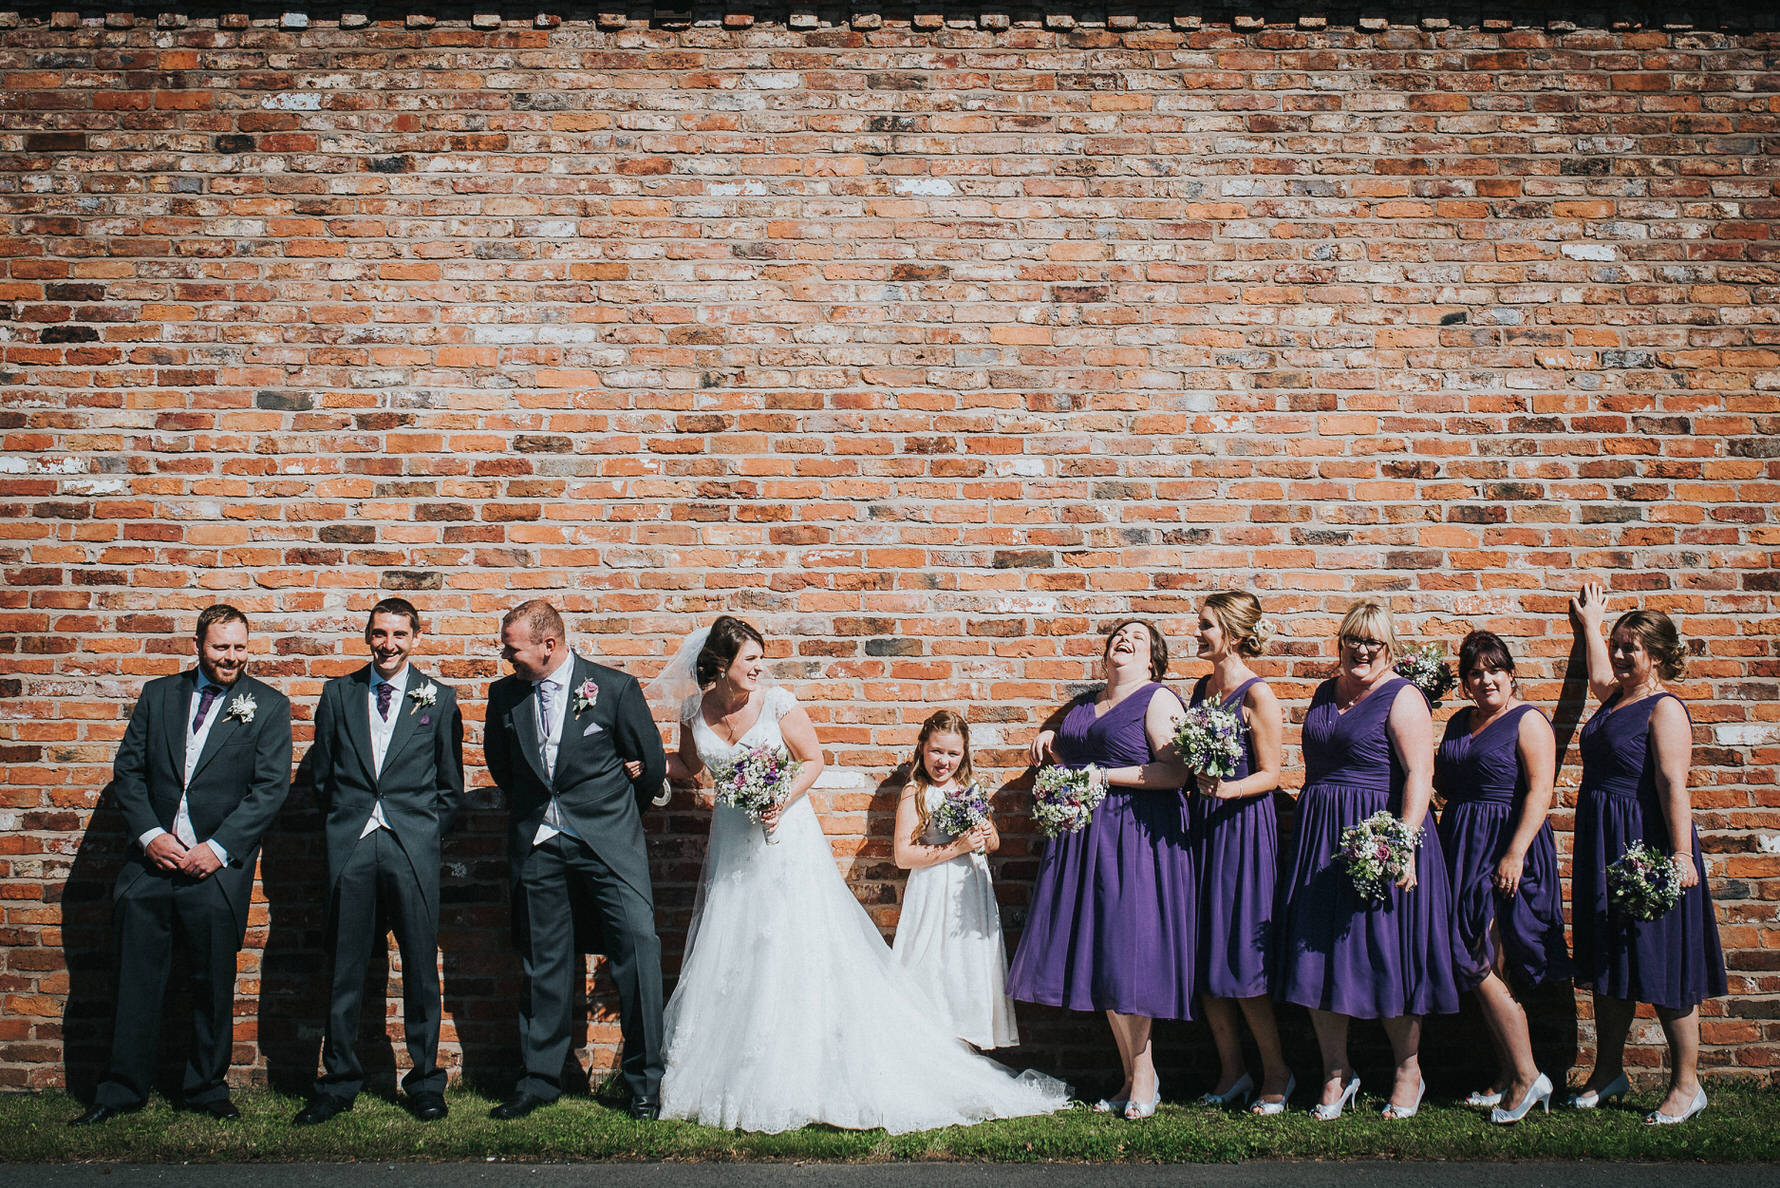 Group photos against a fabulous red brick wall. I have no idea what was said here but obviously something really funny!